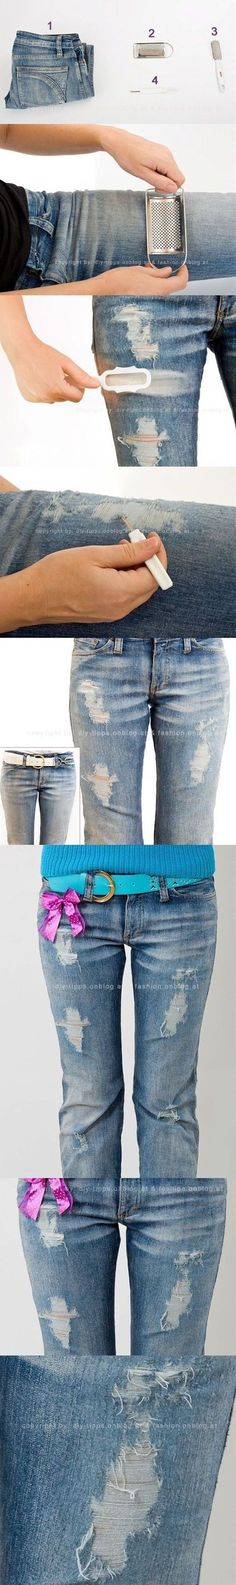 Pair Your Old Jeans